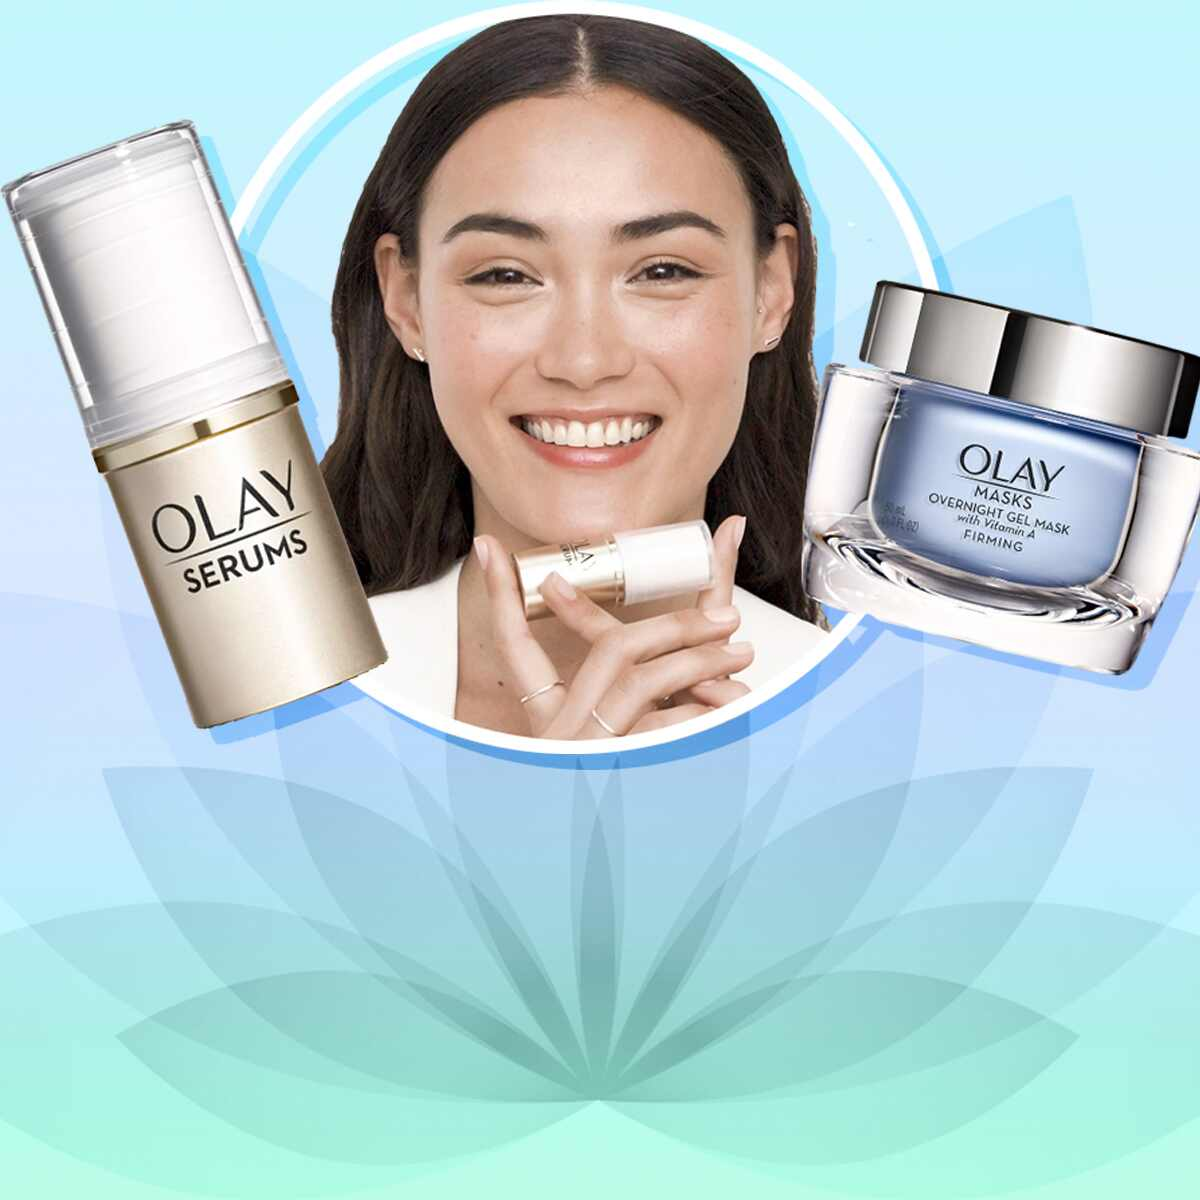 E-Comm: Olay Overnight Masks Serum Sticks Deal